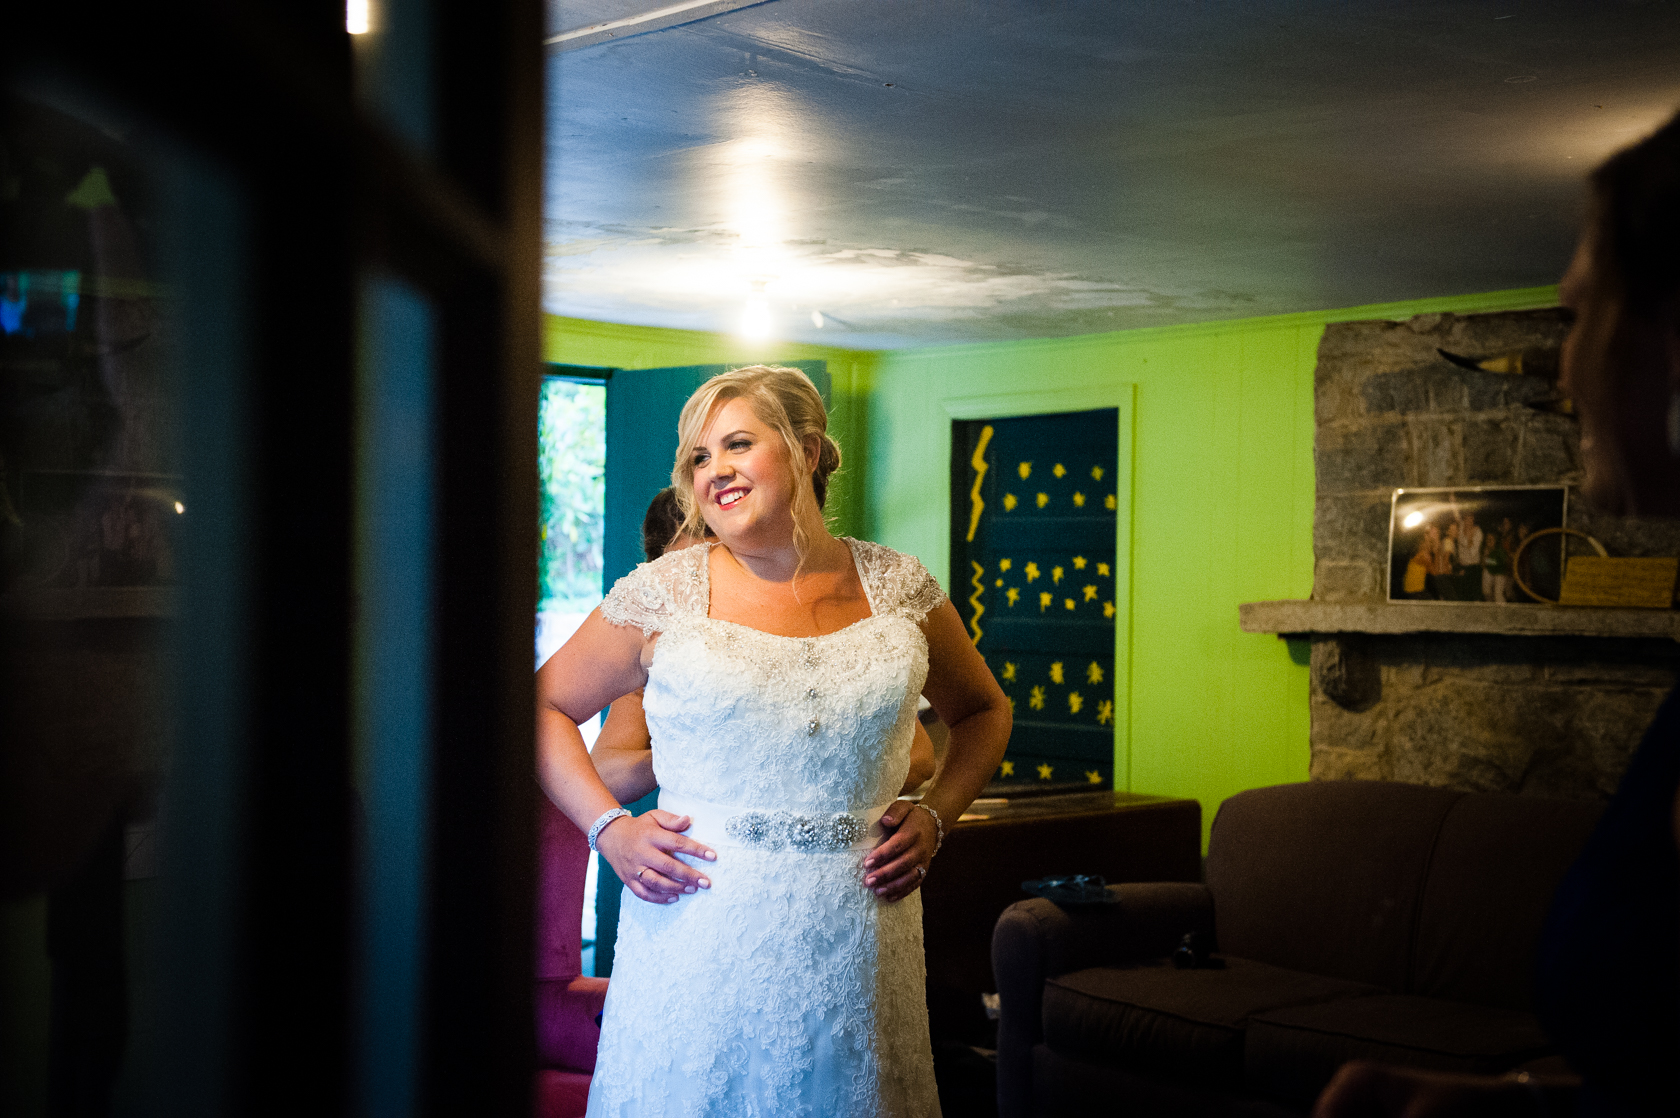 Gorgeous brides gets into her lace dress in the bunk house of a summer camp cabin